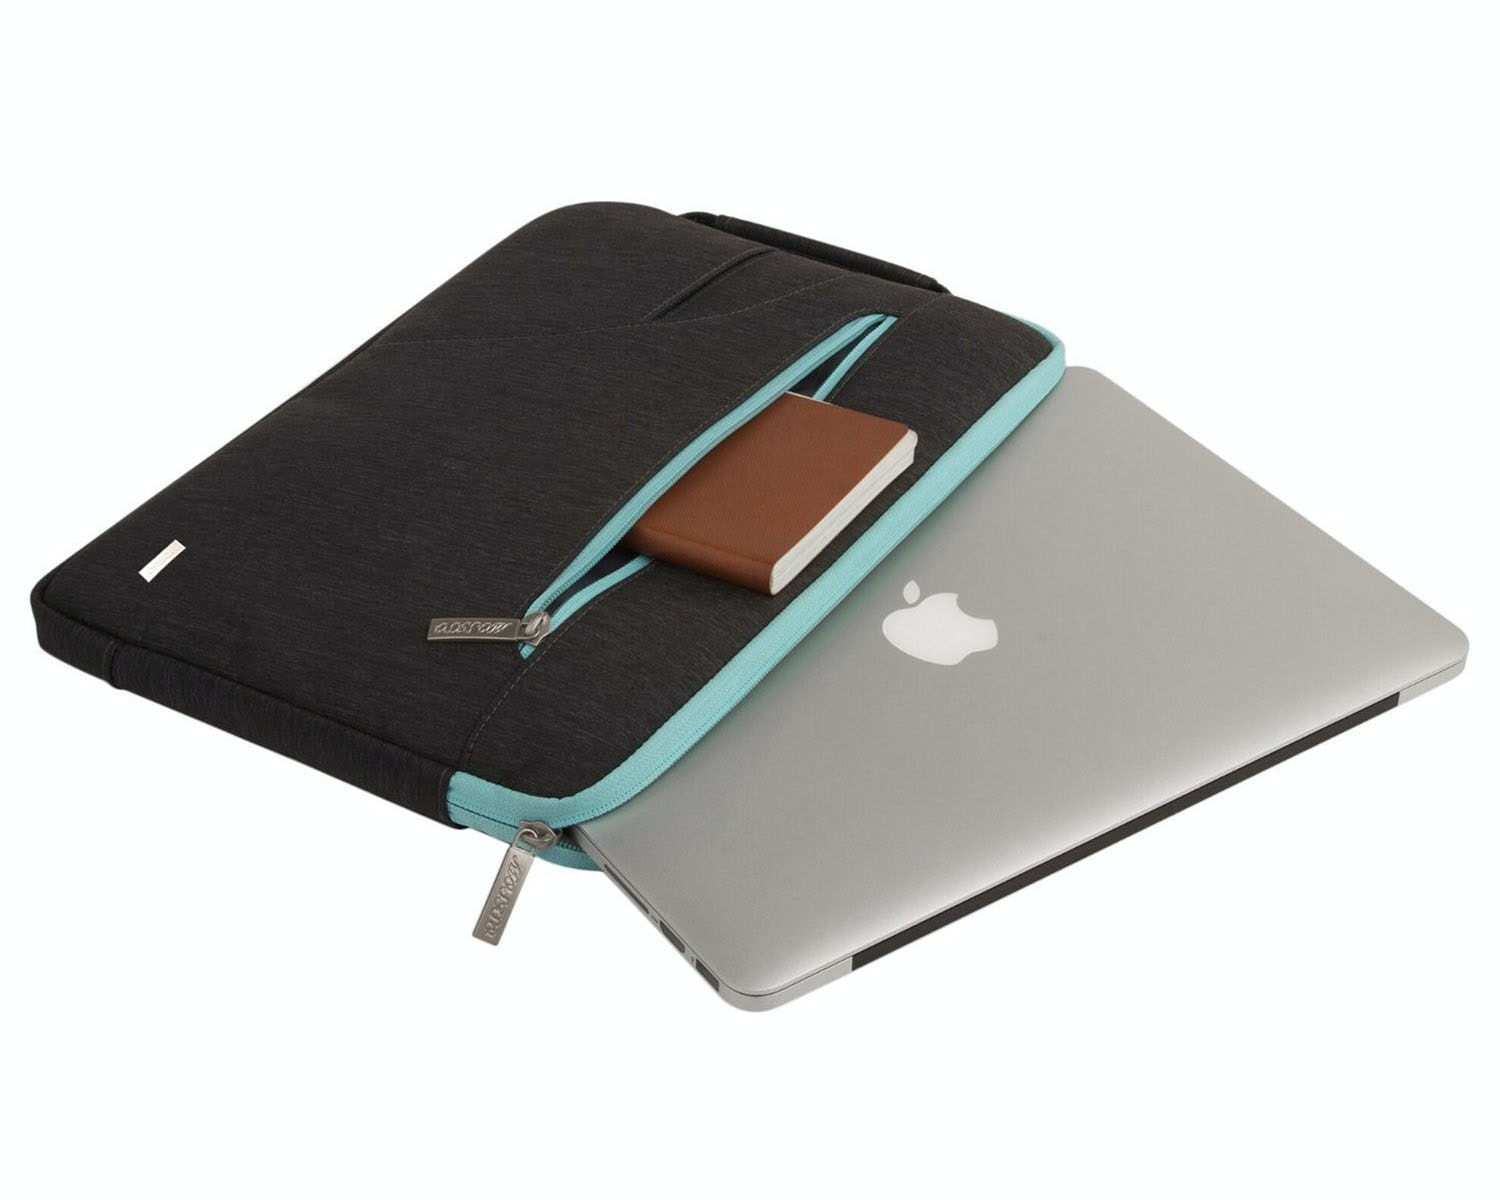 This stylish bag that keeps your laptop safe